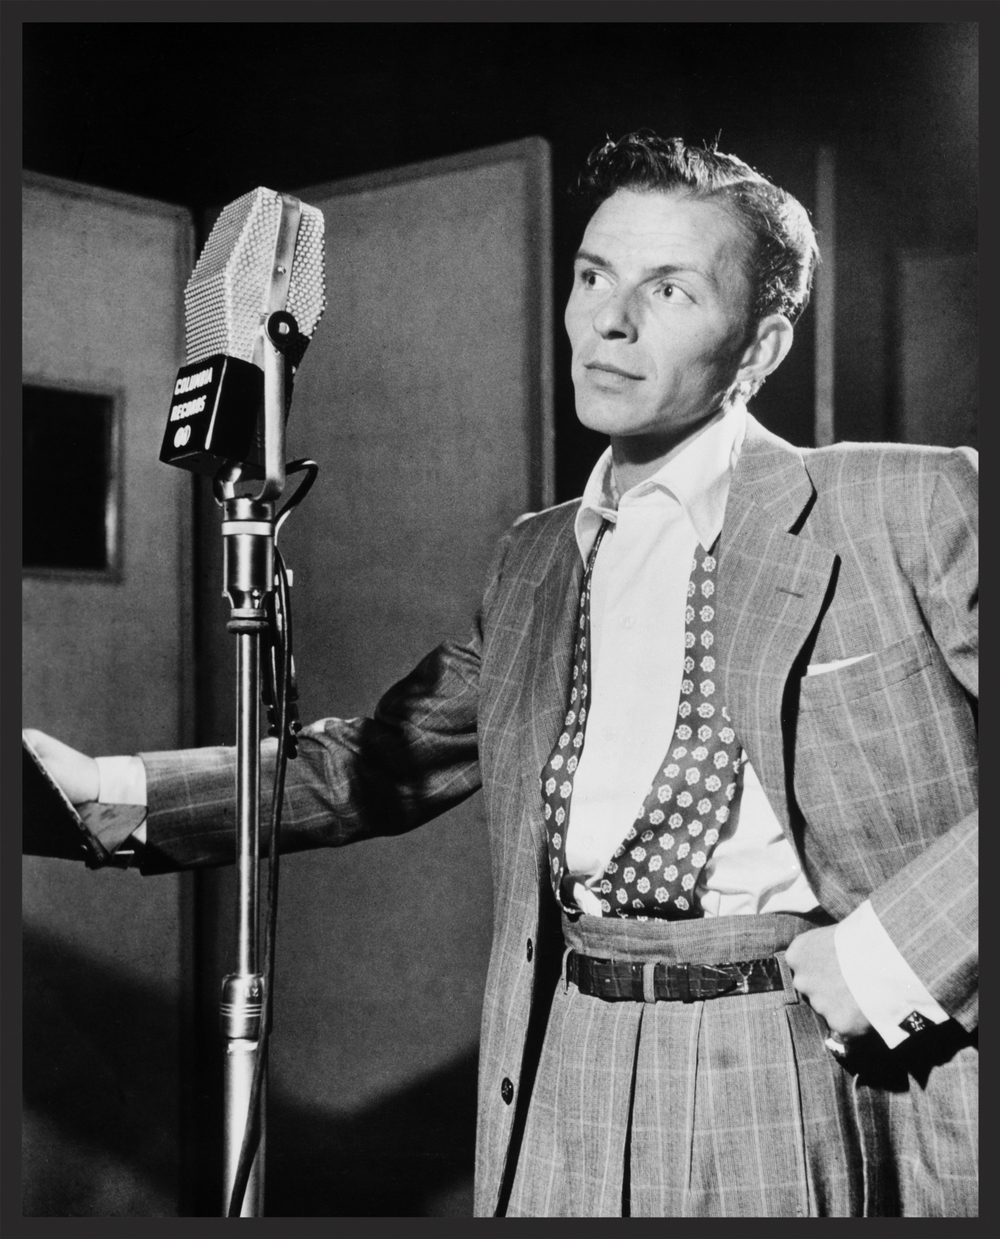 The Great American Songbook's greatest ambassador.